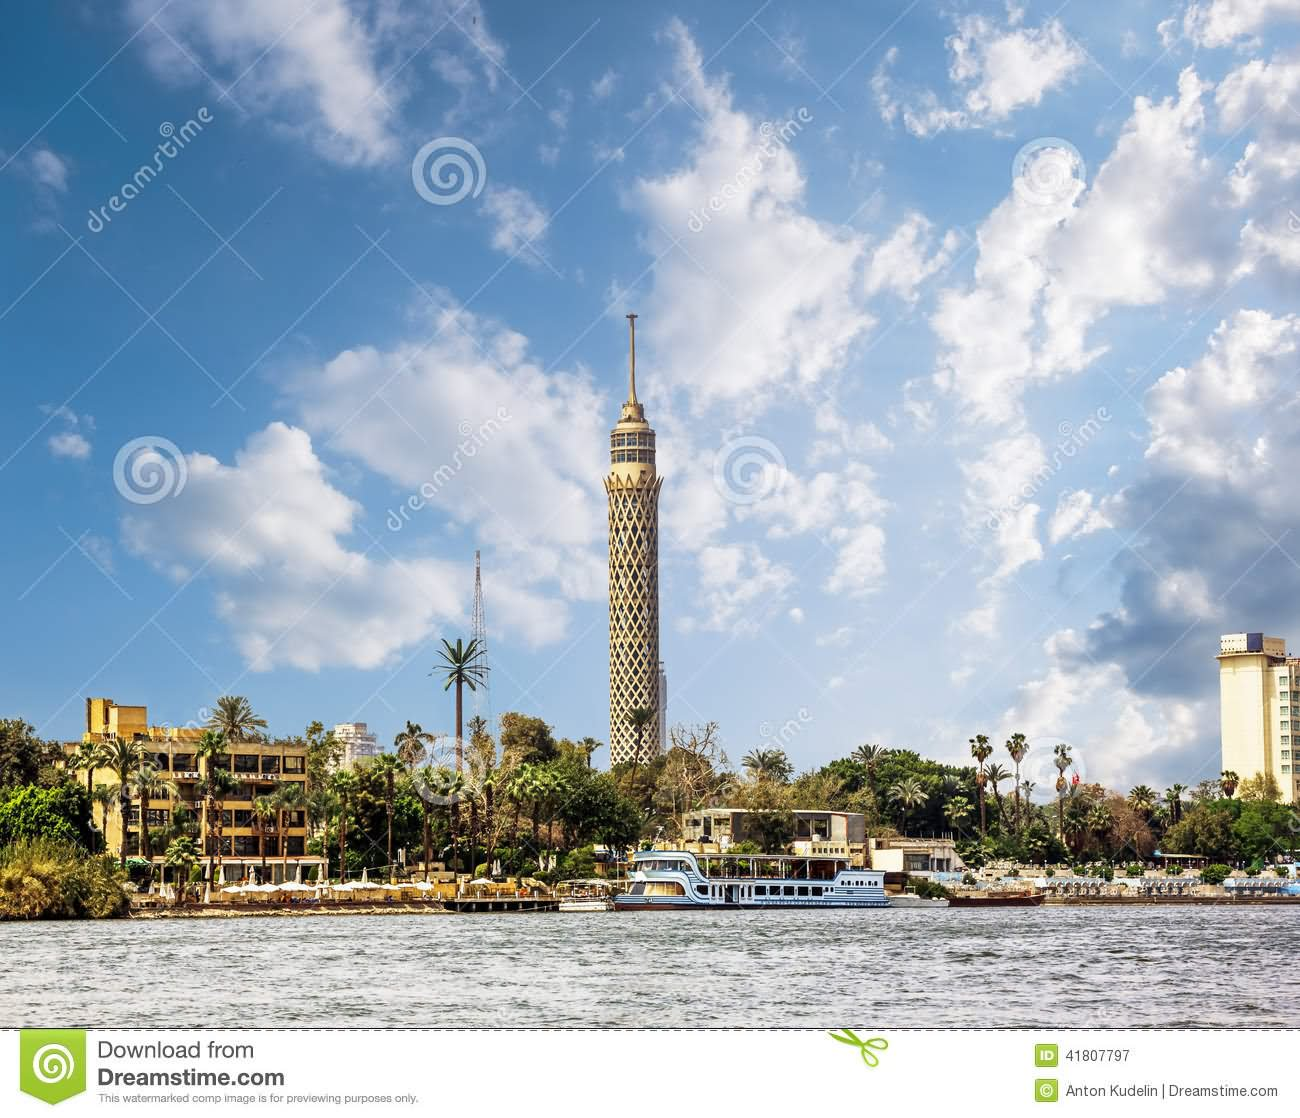 Cairo Tower Across The Nile River View In Egypt